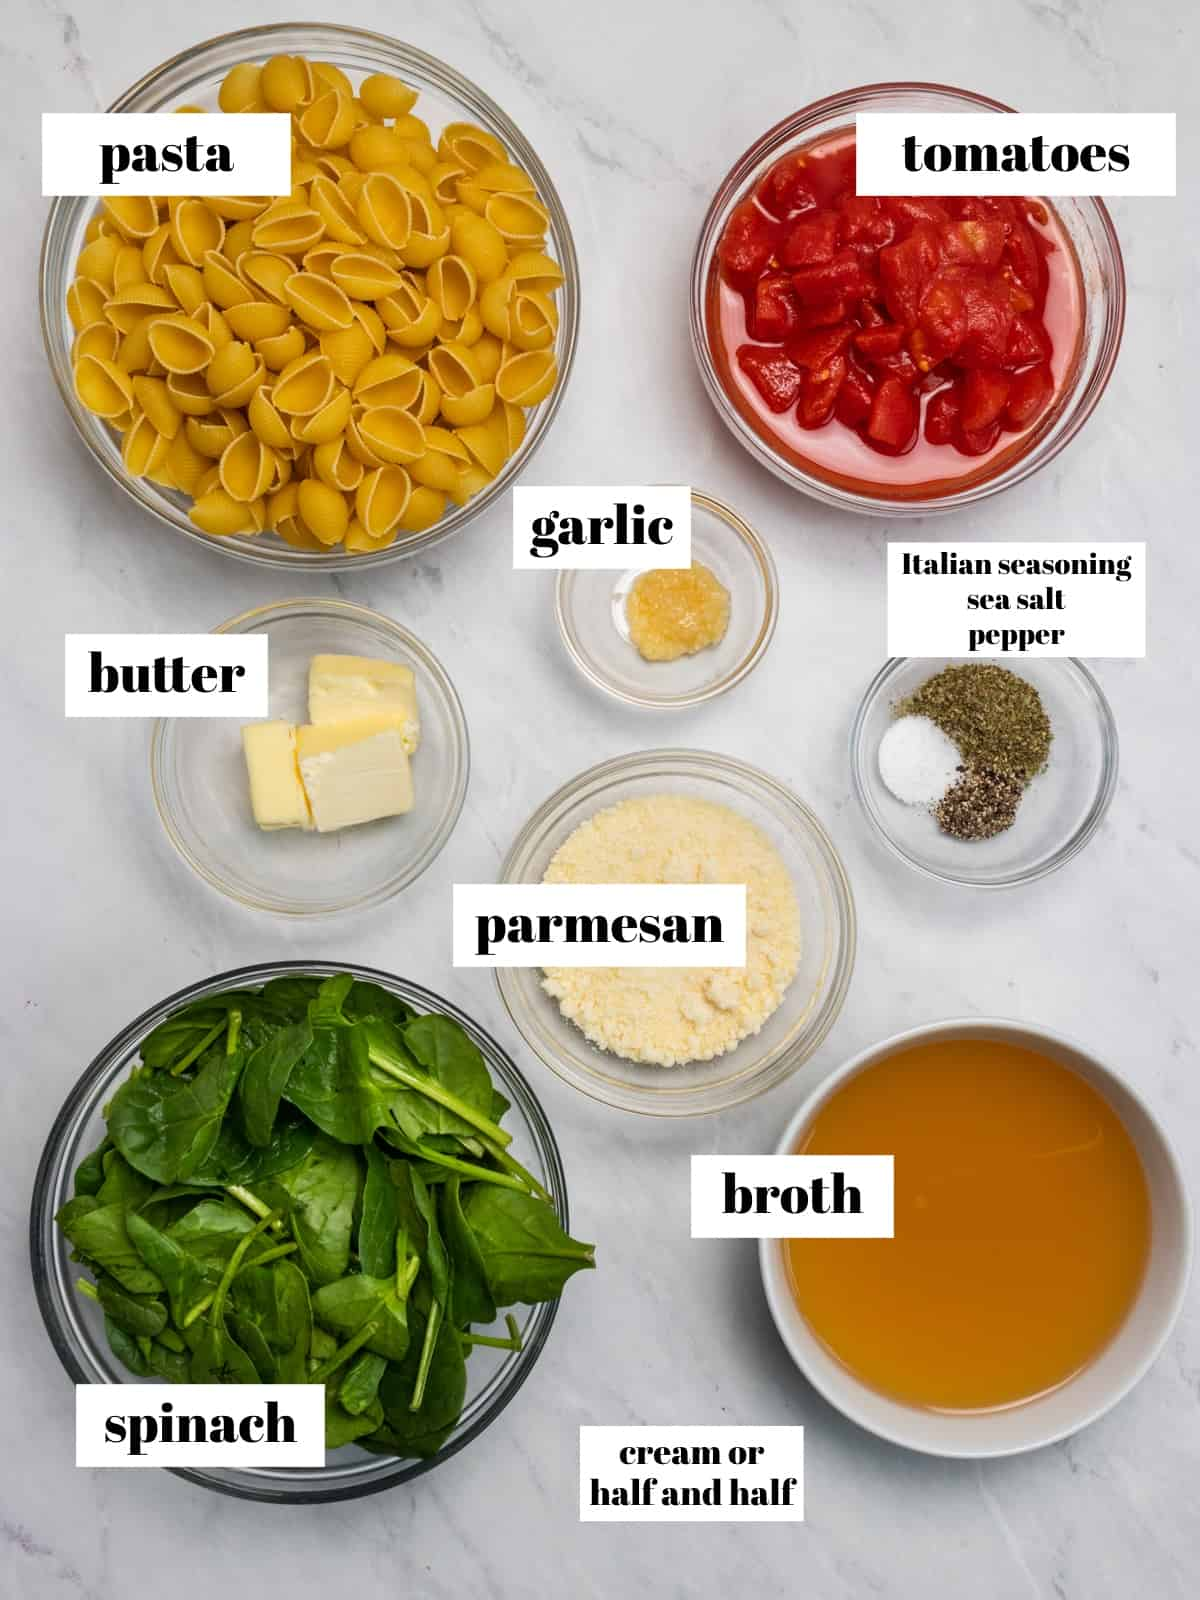 Spinach, broth, tomatoes, cheese and ingredients labeled on counter.